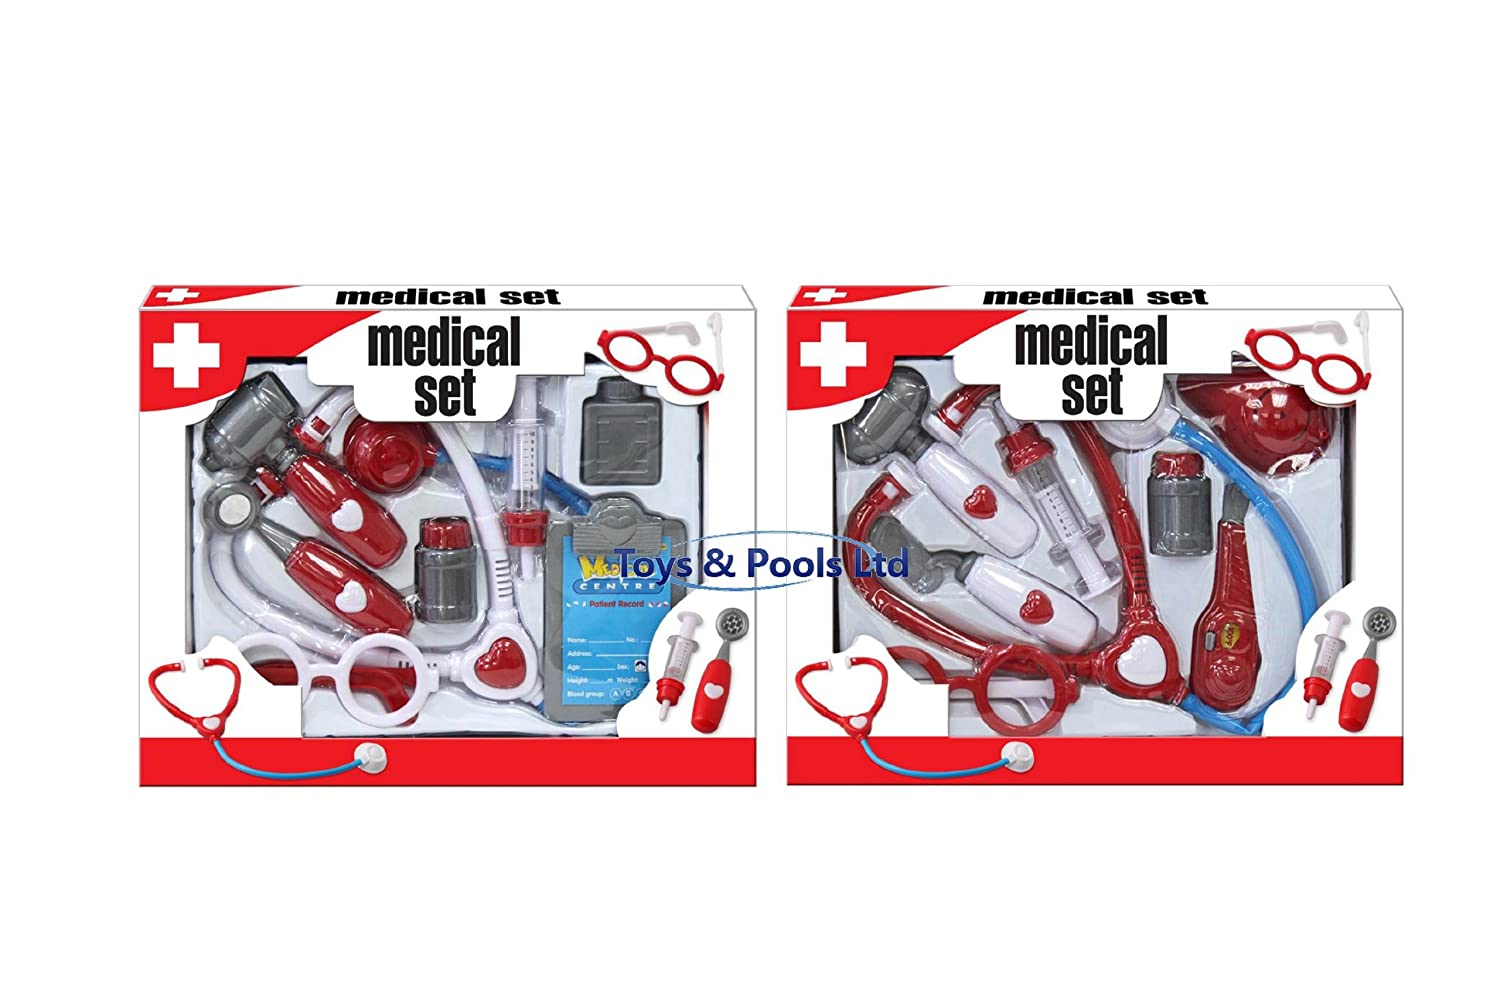 Childs Toy Doctors Medical Set Great Role Play Fun KandyToys